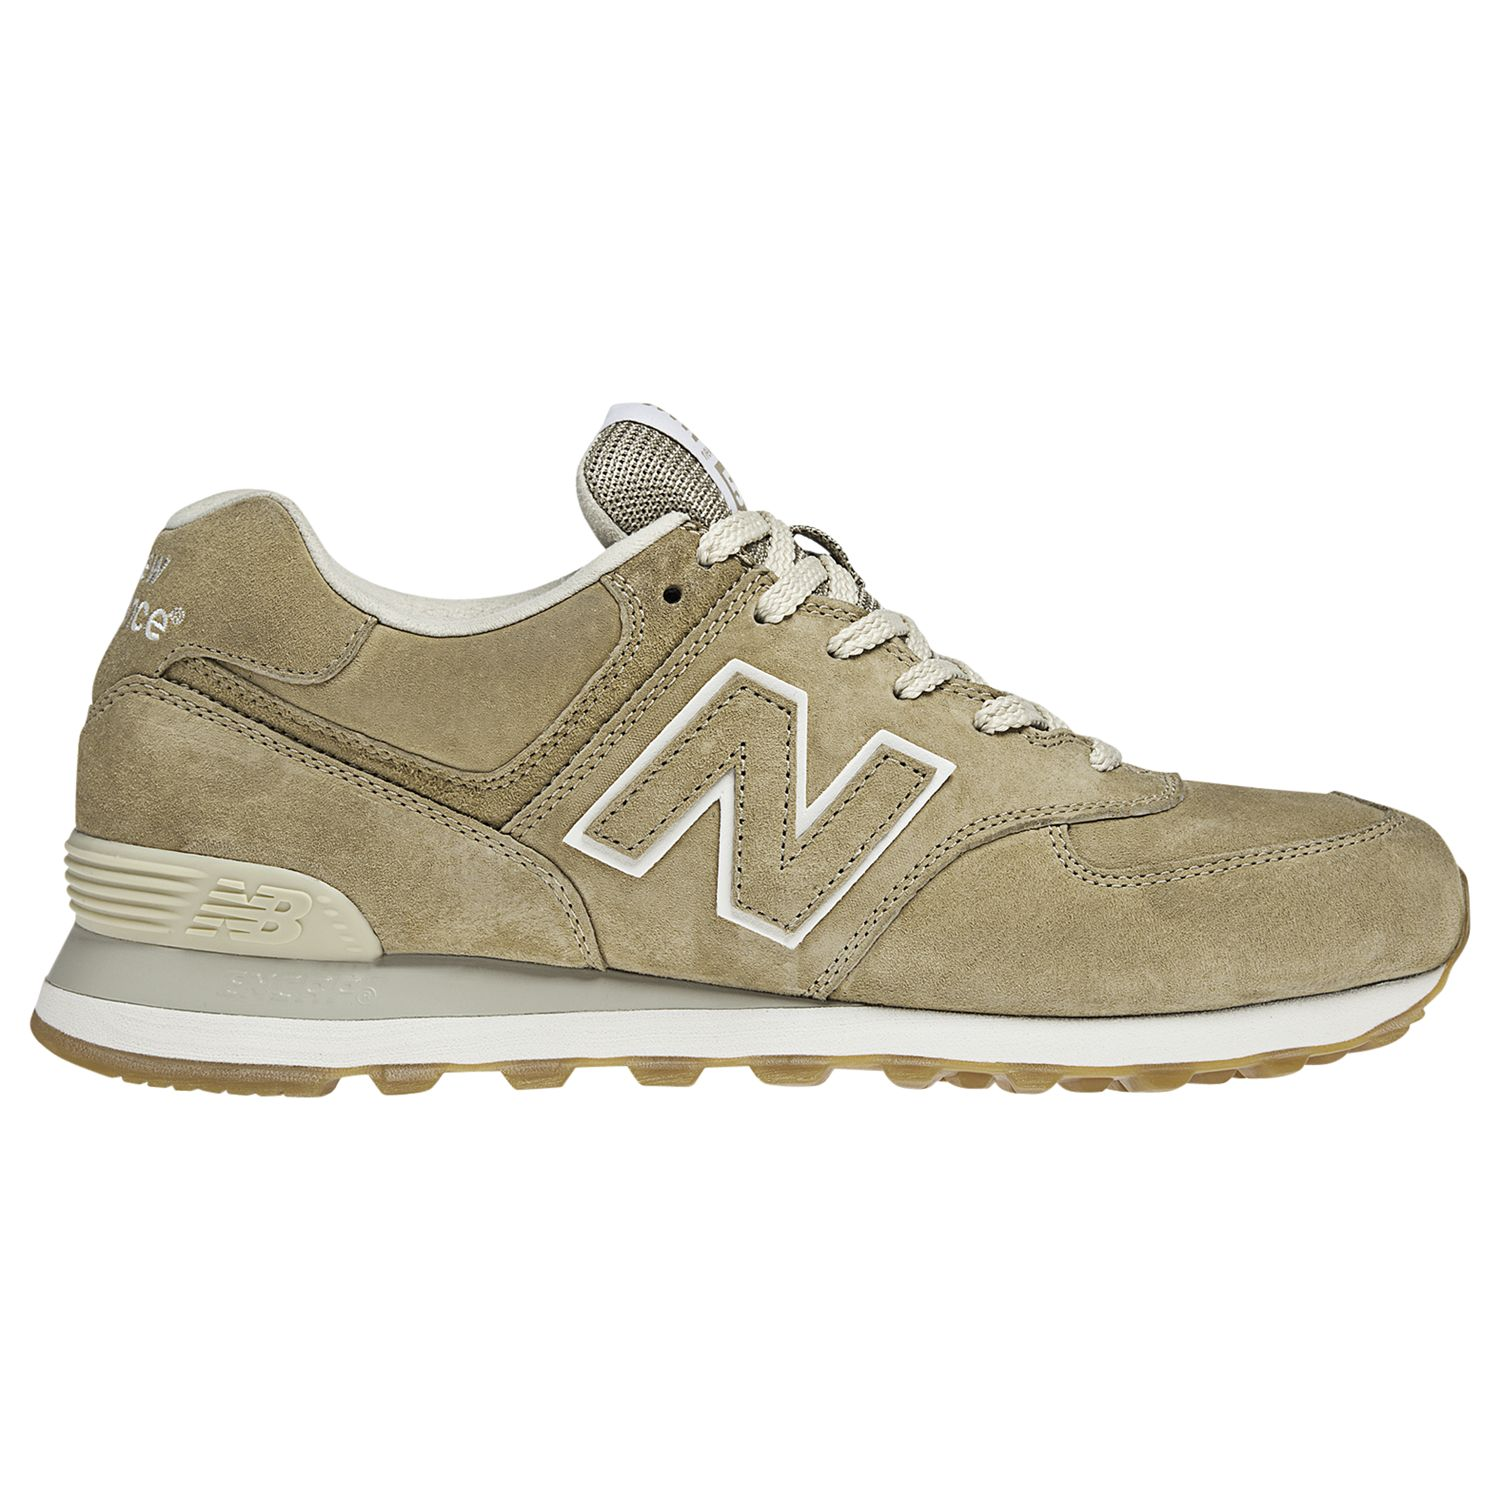 New Balance 574 Trainers, Stone